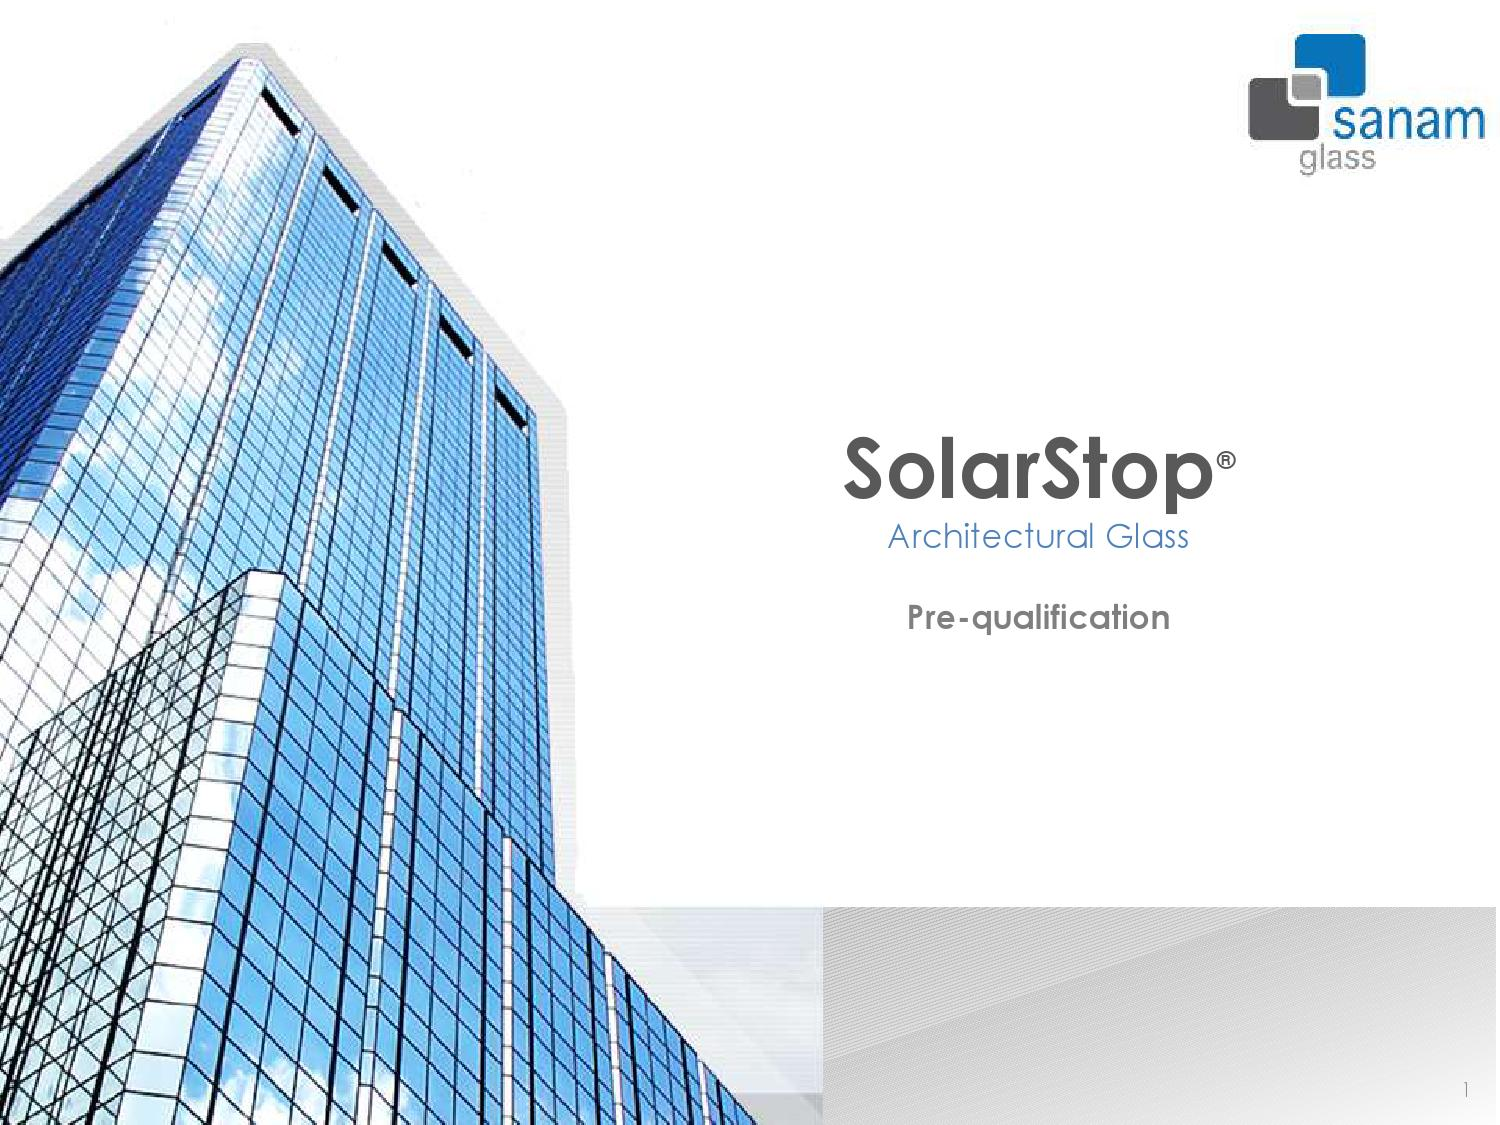 Sanam Solarstop By Vision Business Management Services